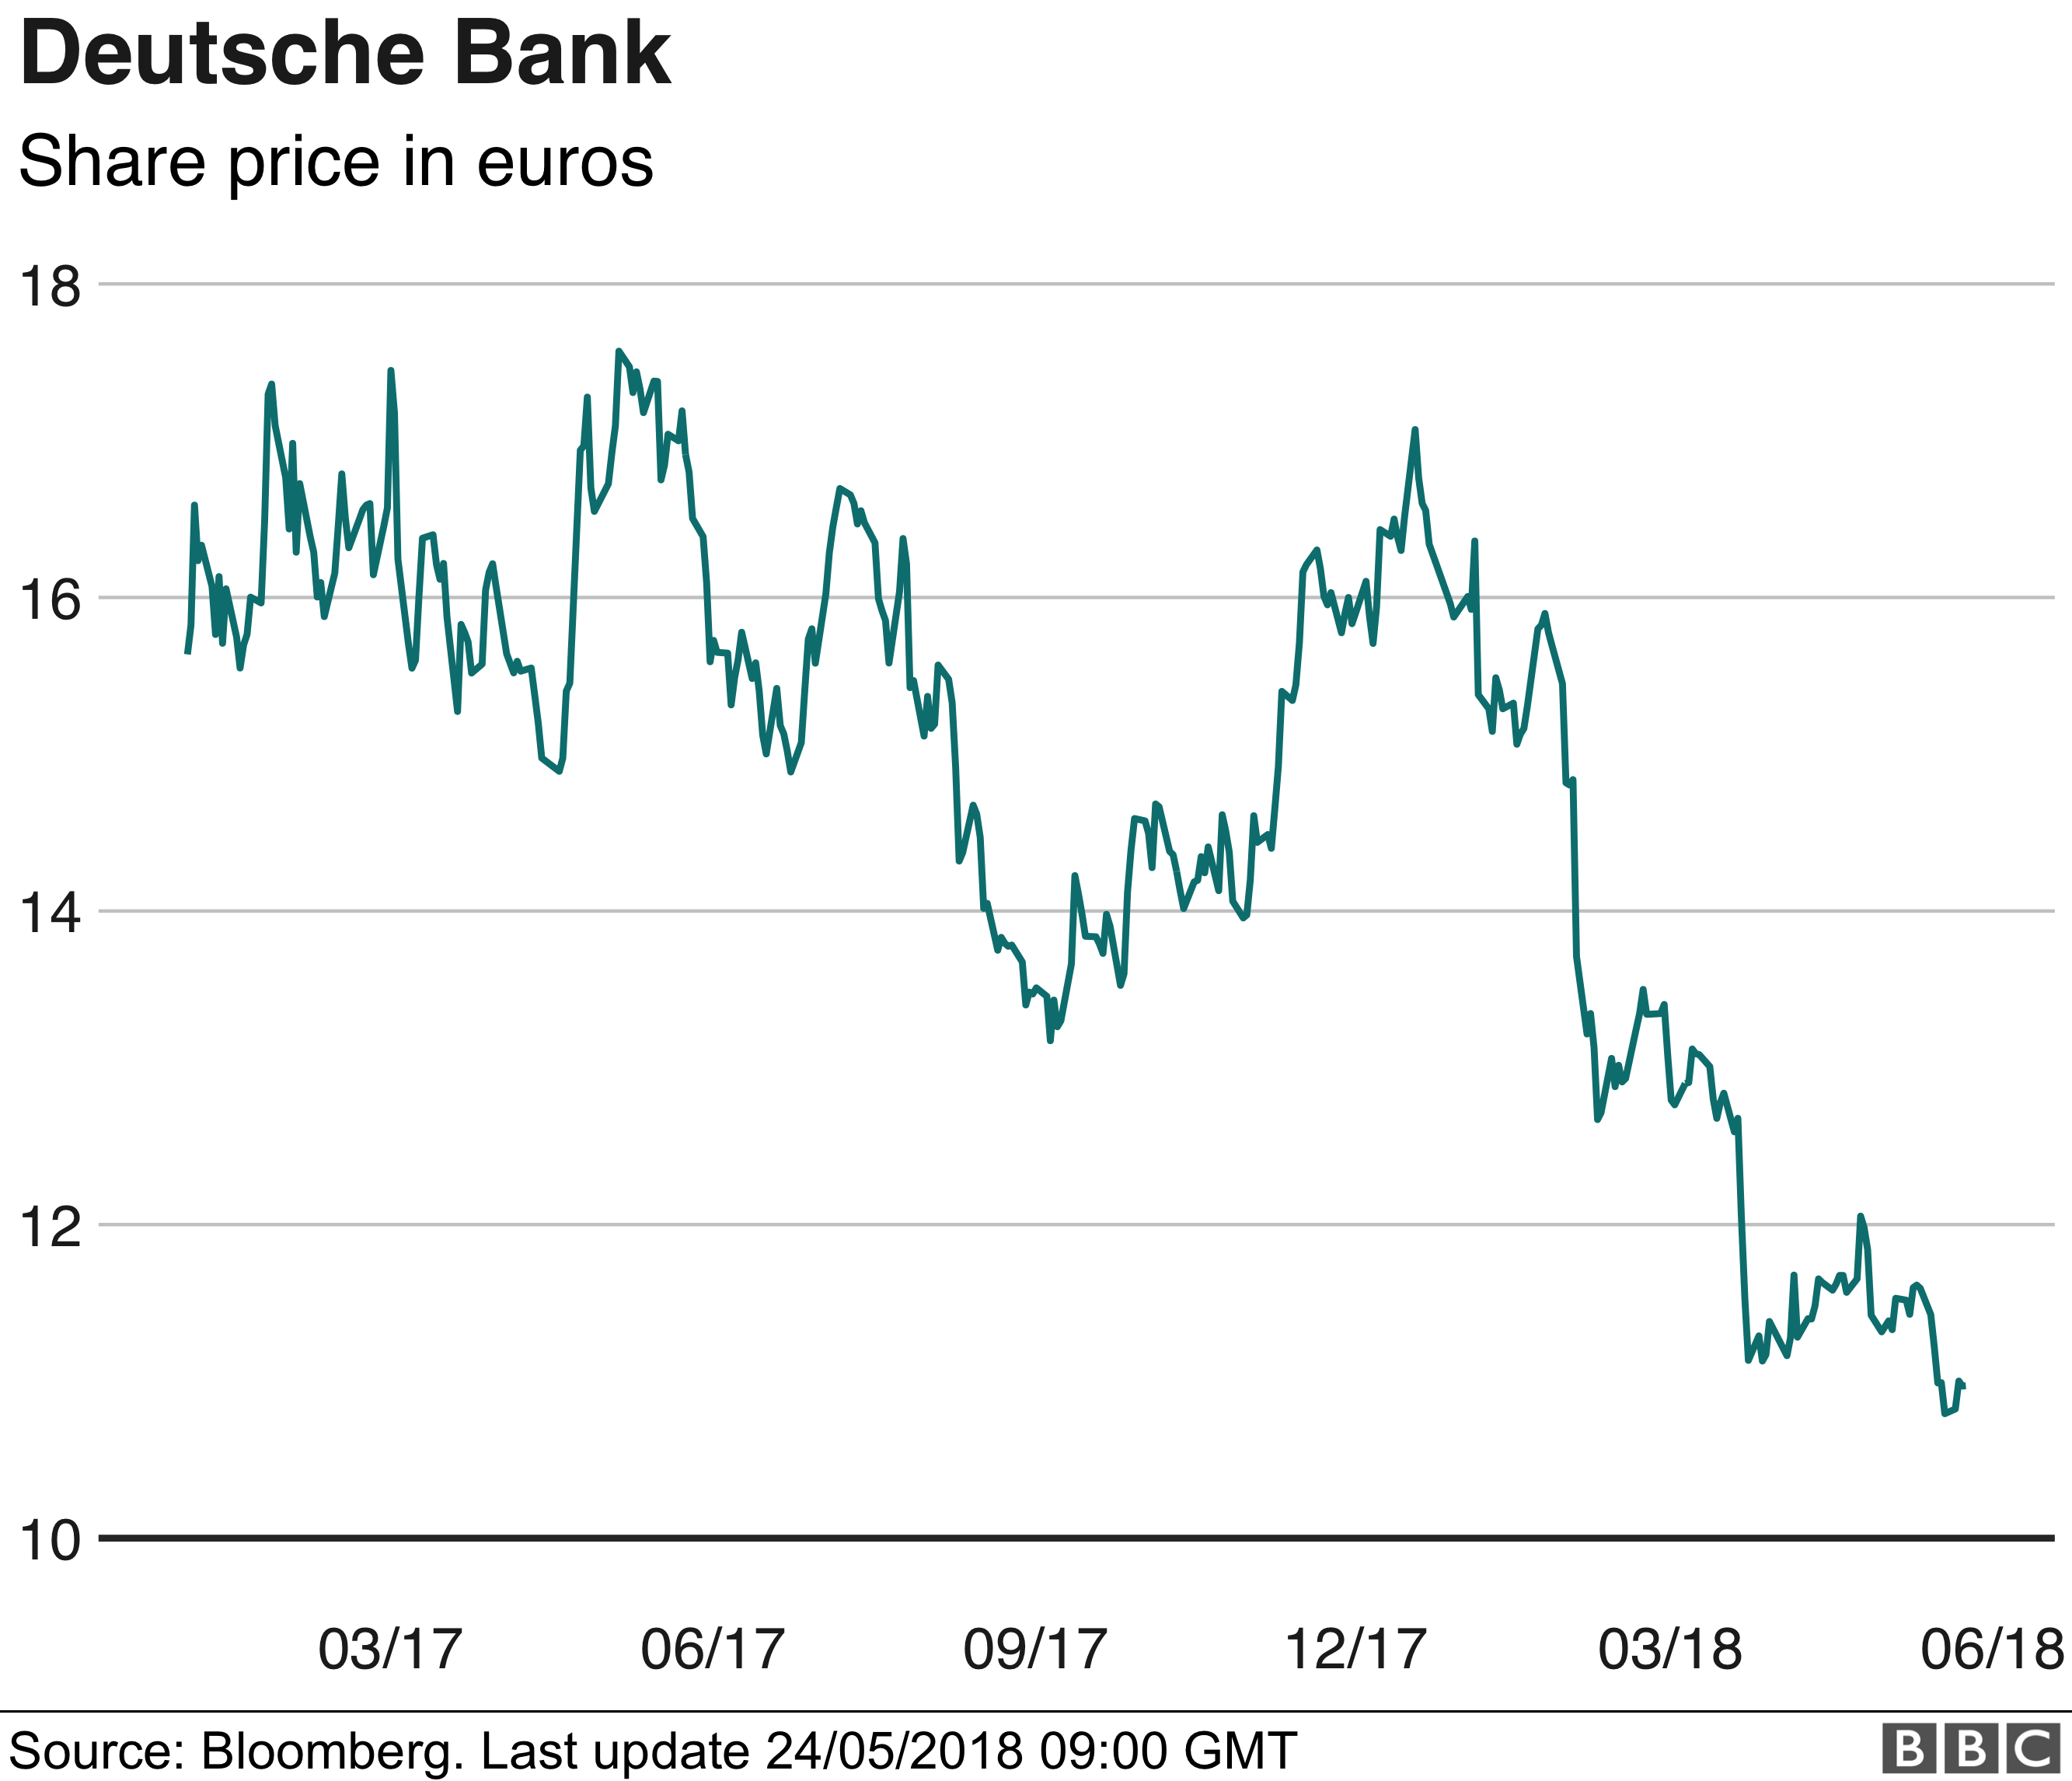 Deutsche Bank share price graphic